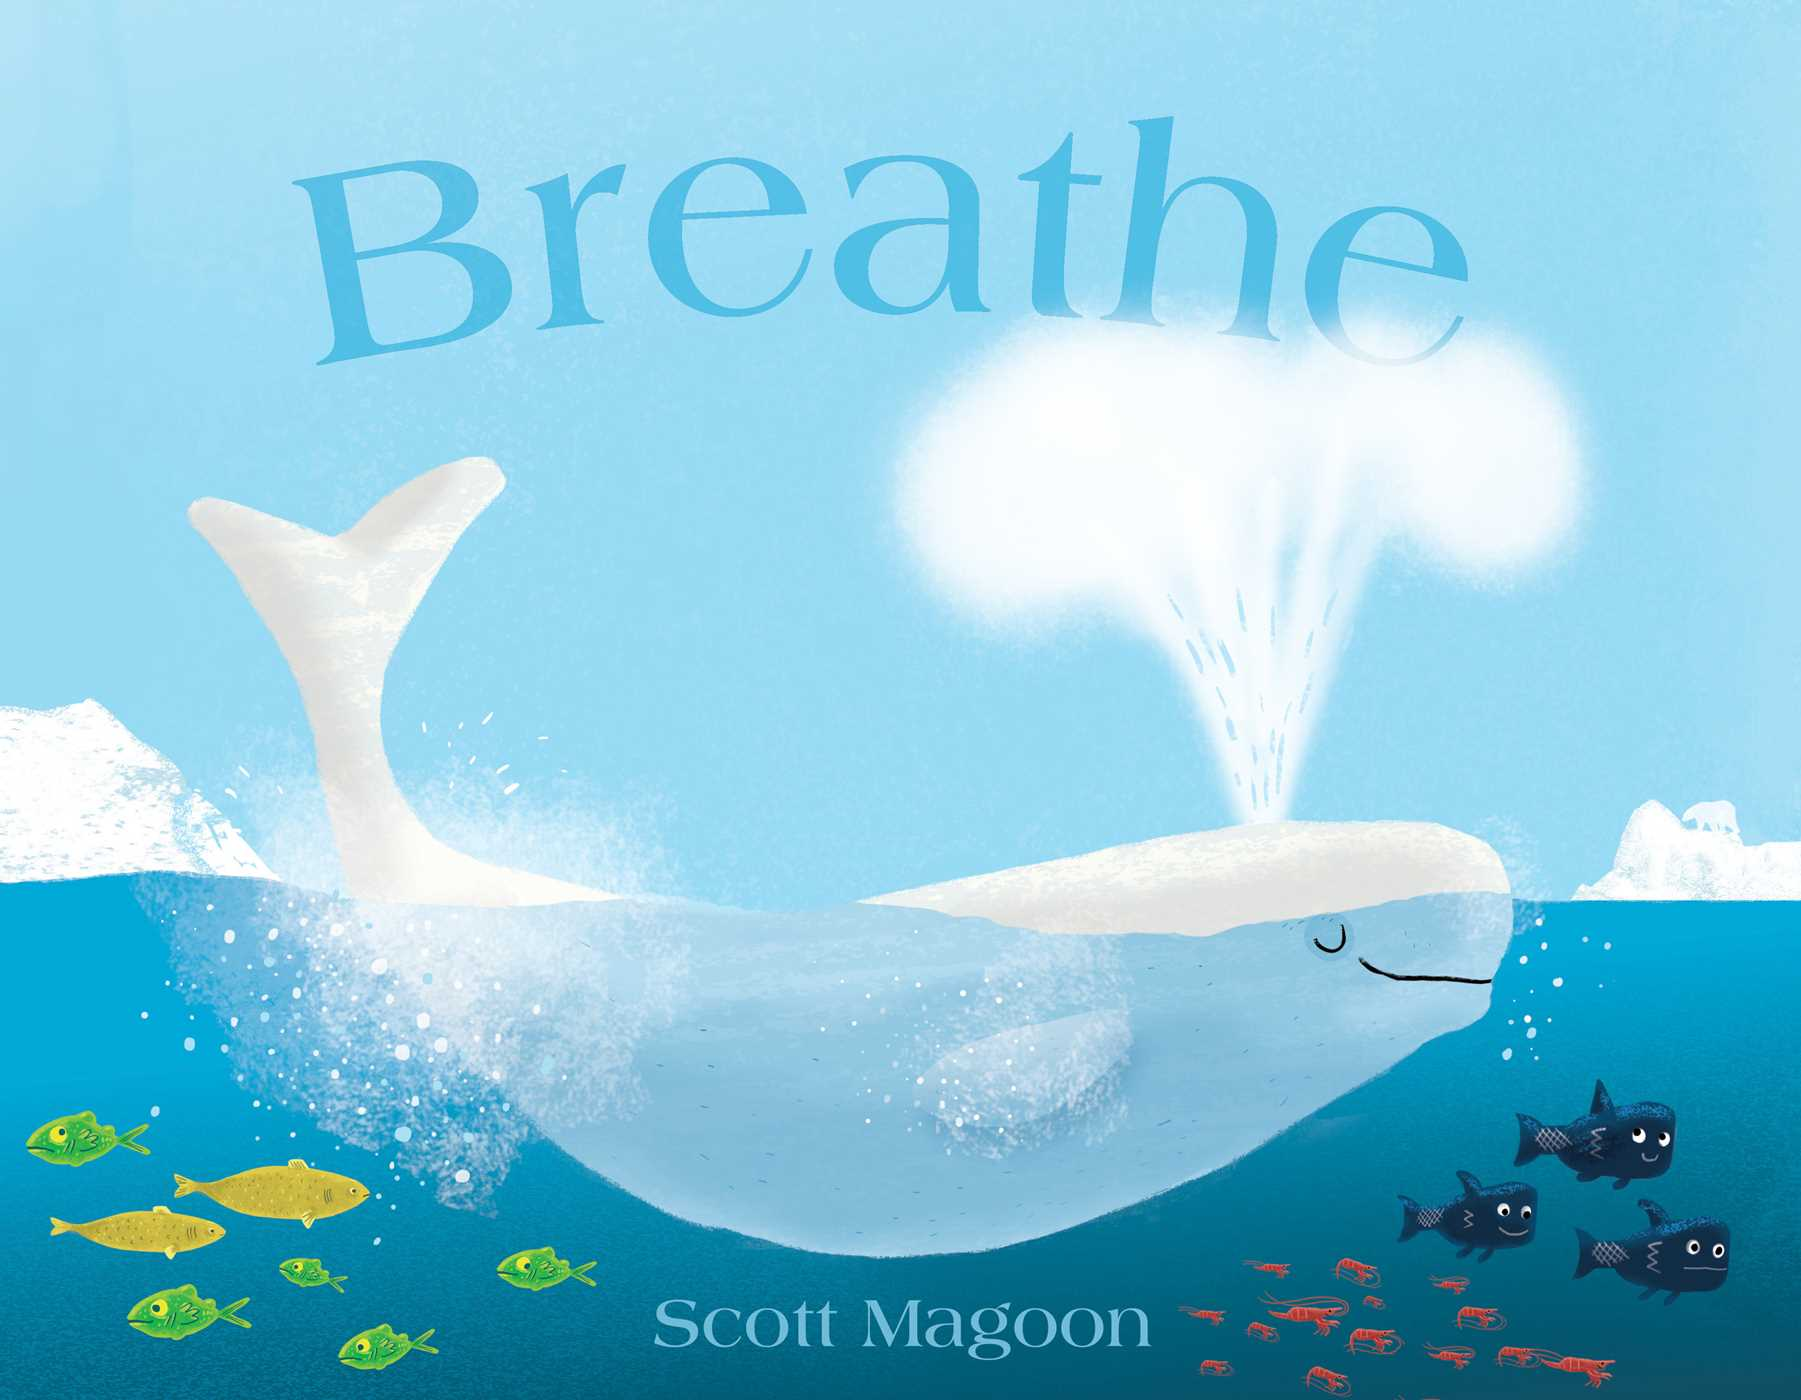 Breathe 9781442412583 hr